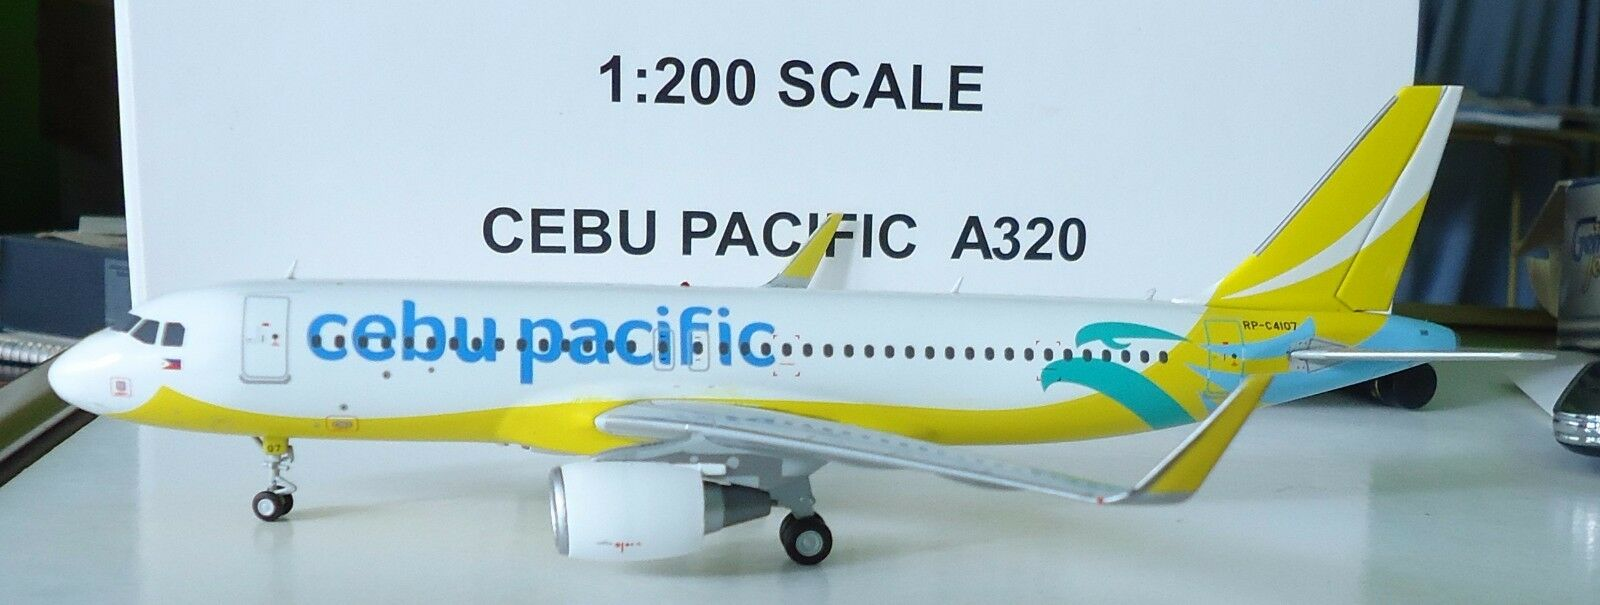 - 200 - 200 a320 cebu pacific airlines   rp-c4107